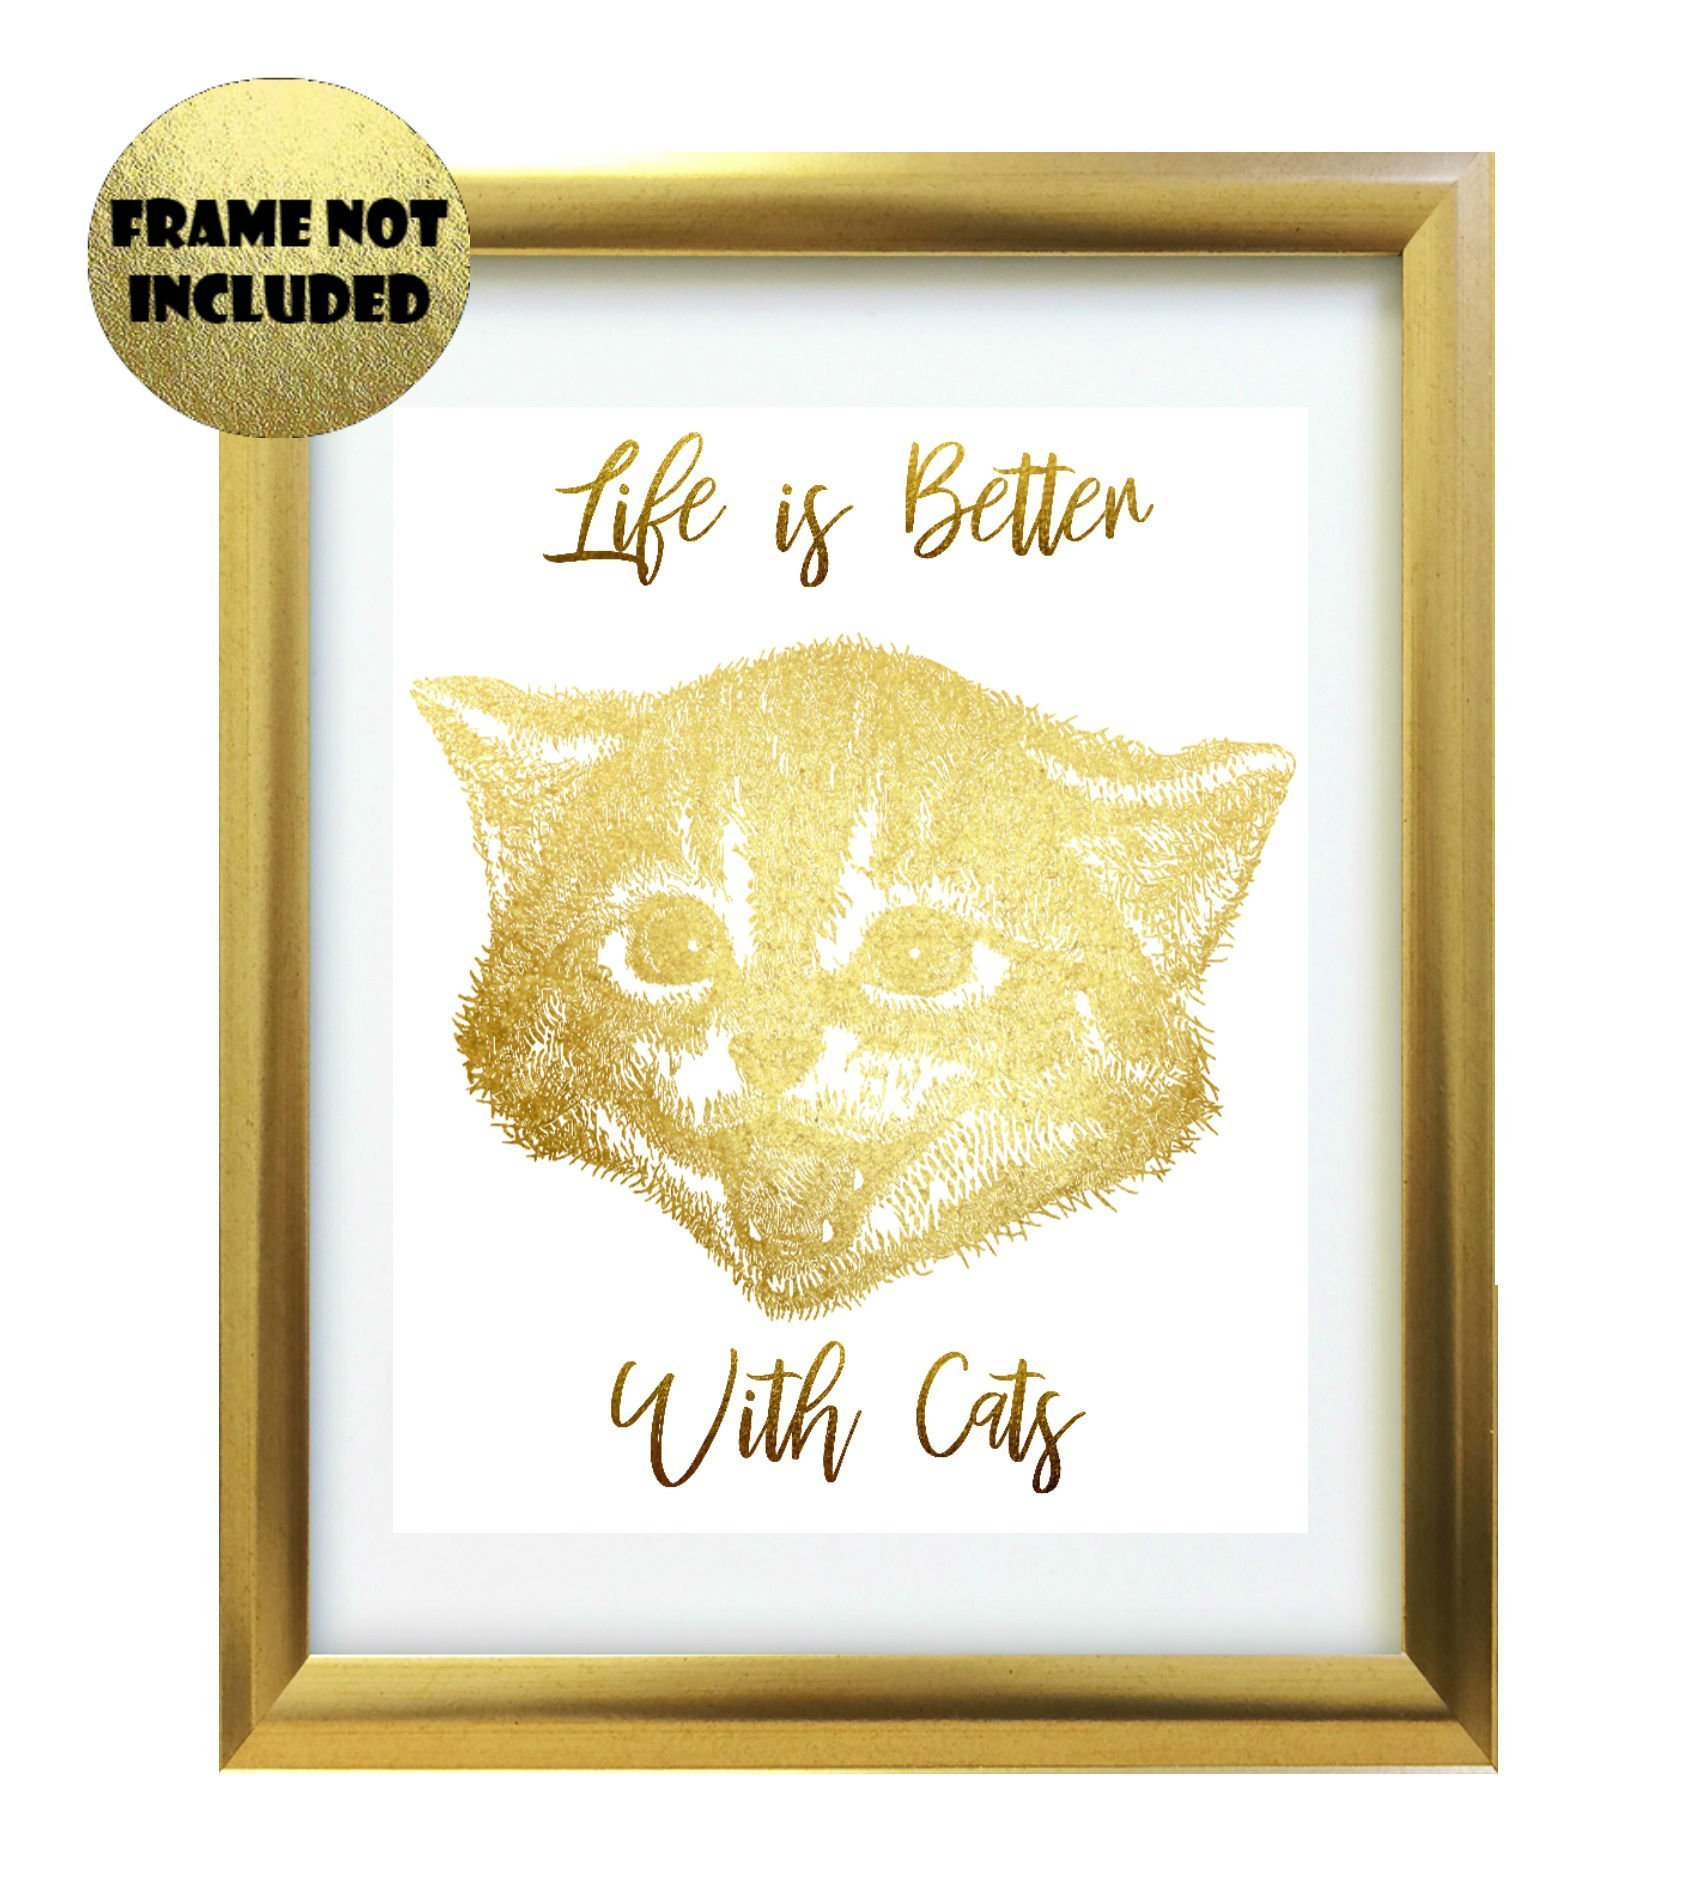 Life is better with Cats Gold Foil Art Inspirational Quote 8 inches x 10 inches Custom Made Wall Art